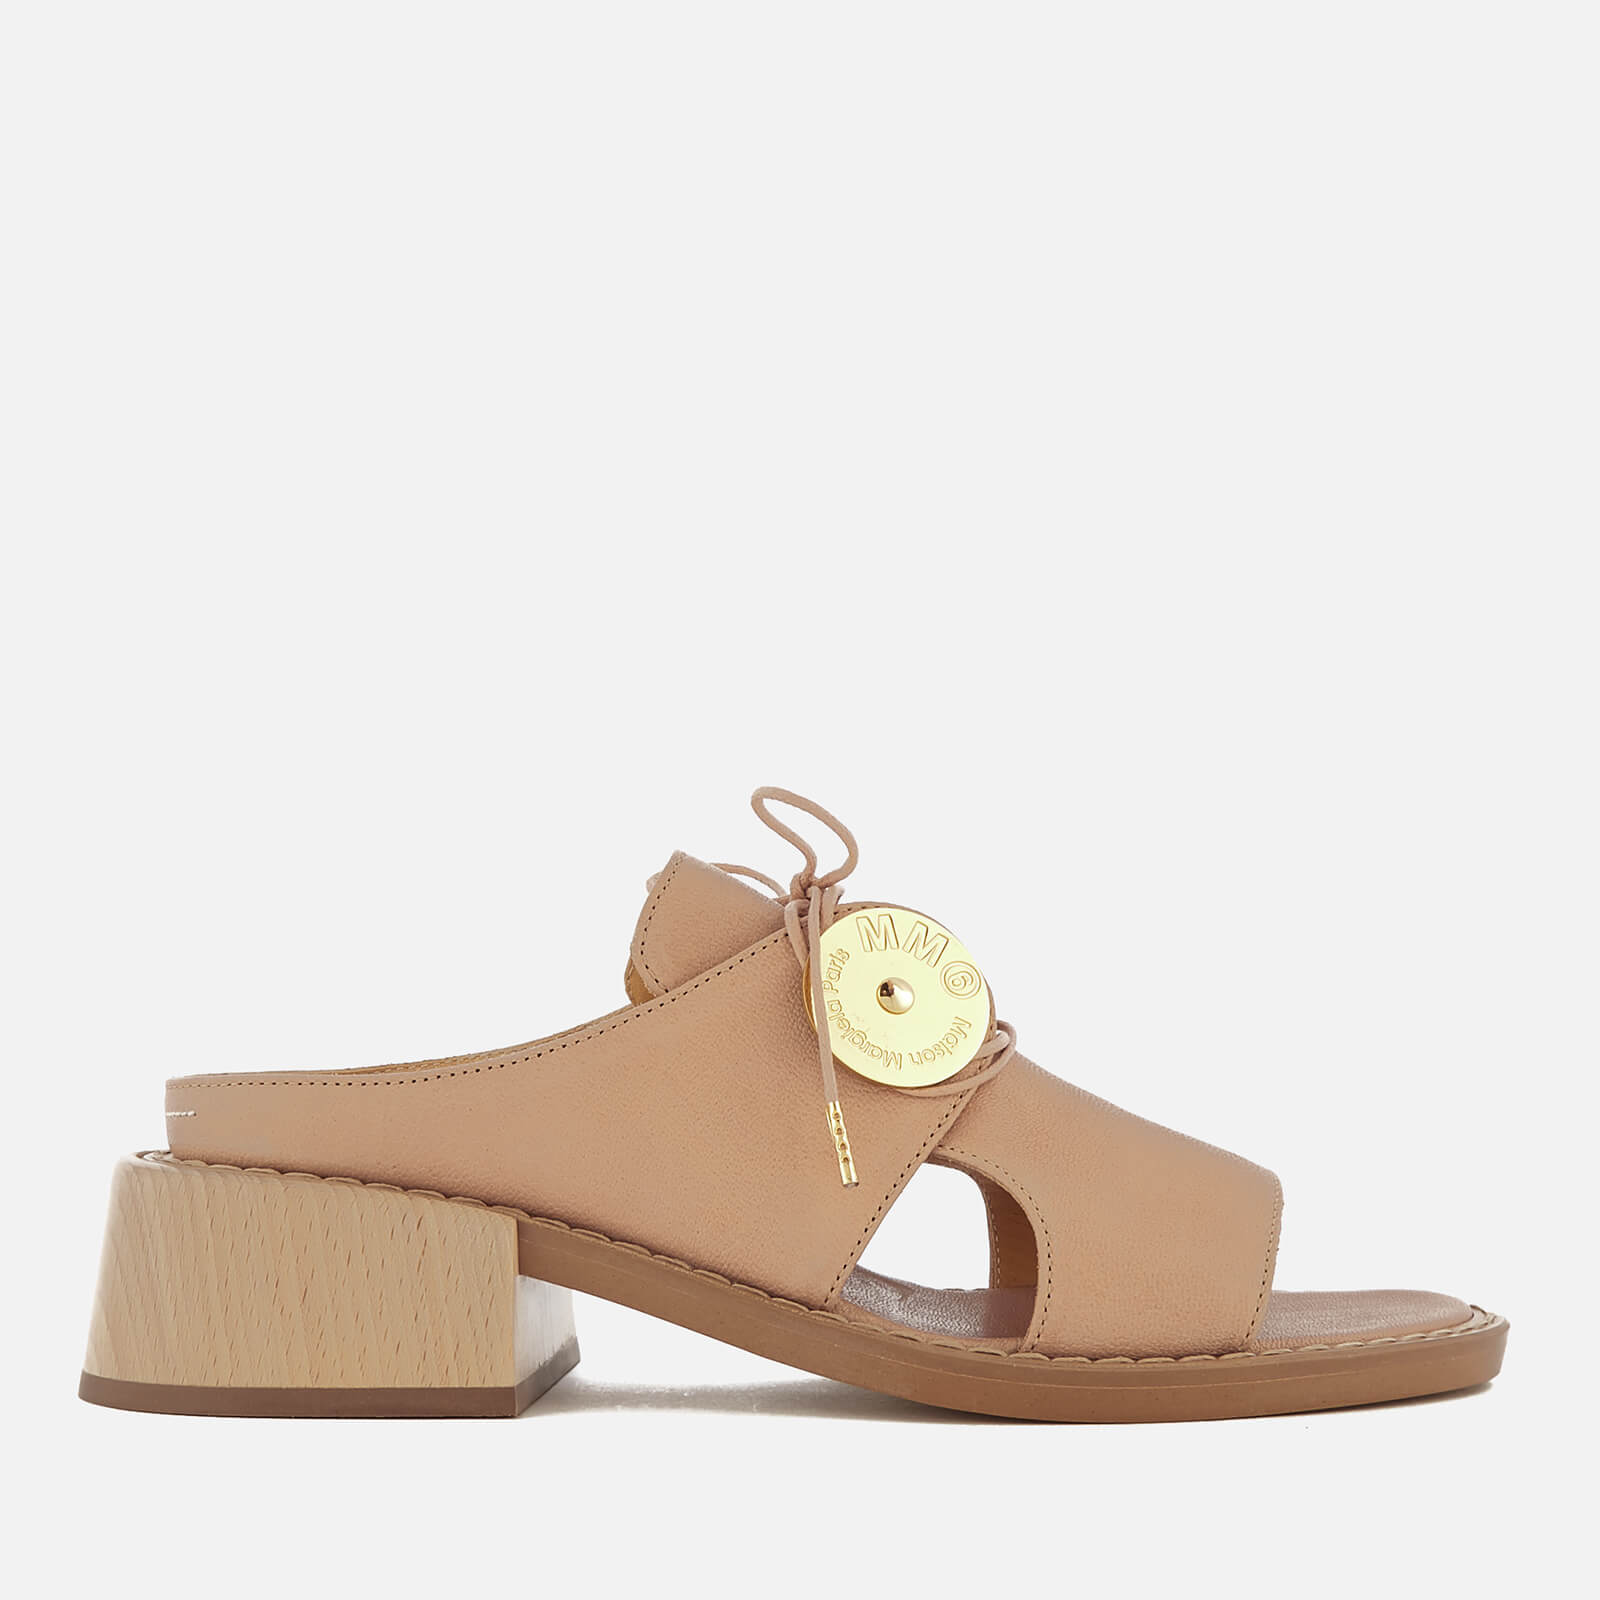 215d5eac0b MM6 Maison Margiela Women's Open Toe Slip On Sandal with Wooden Block Heels  - Sand - Free UK Delivery over £50